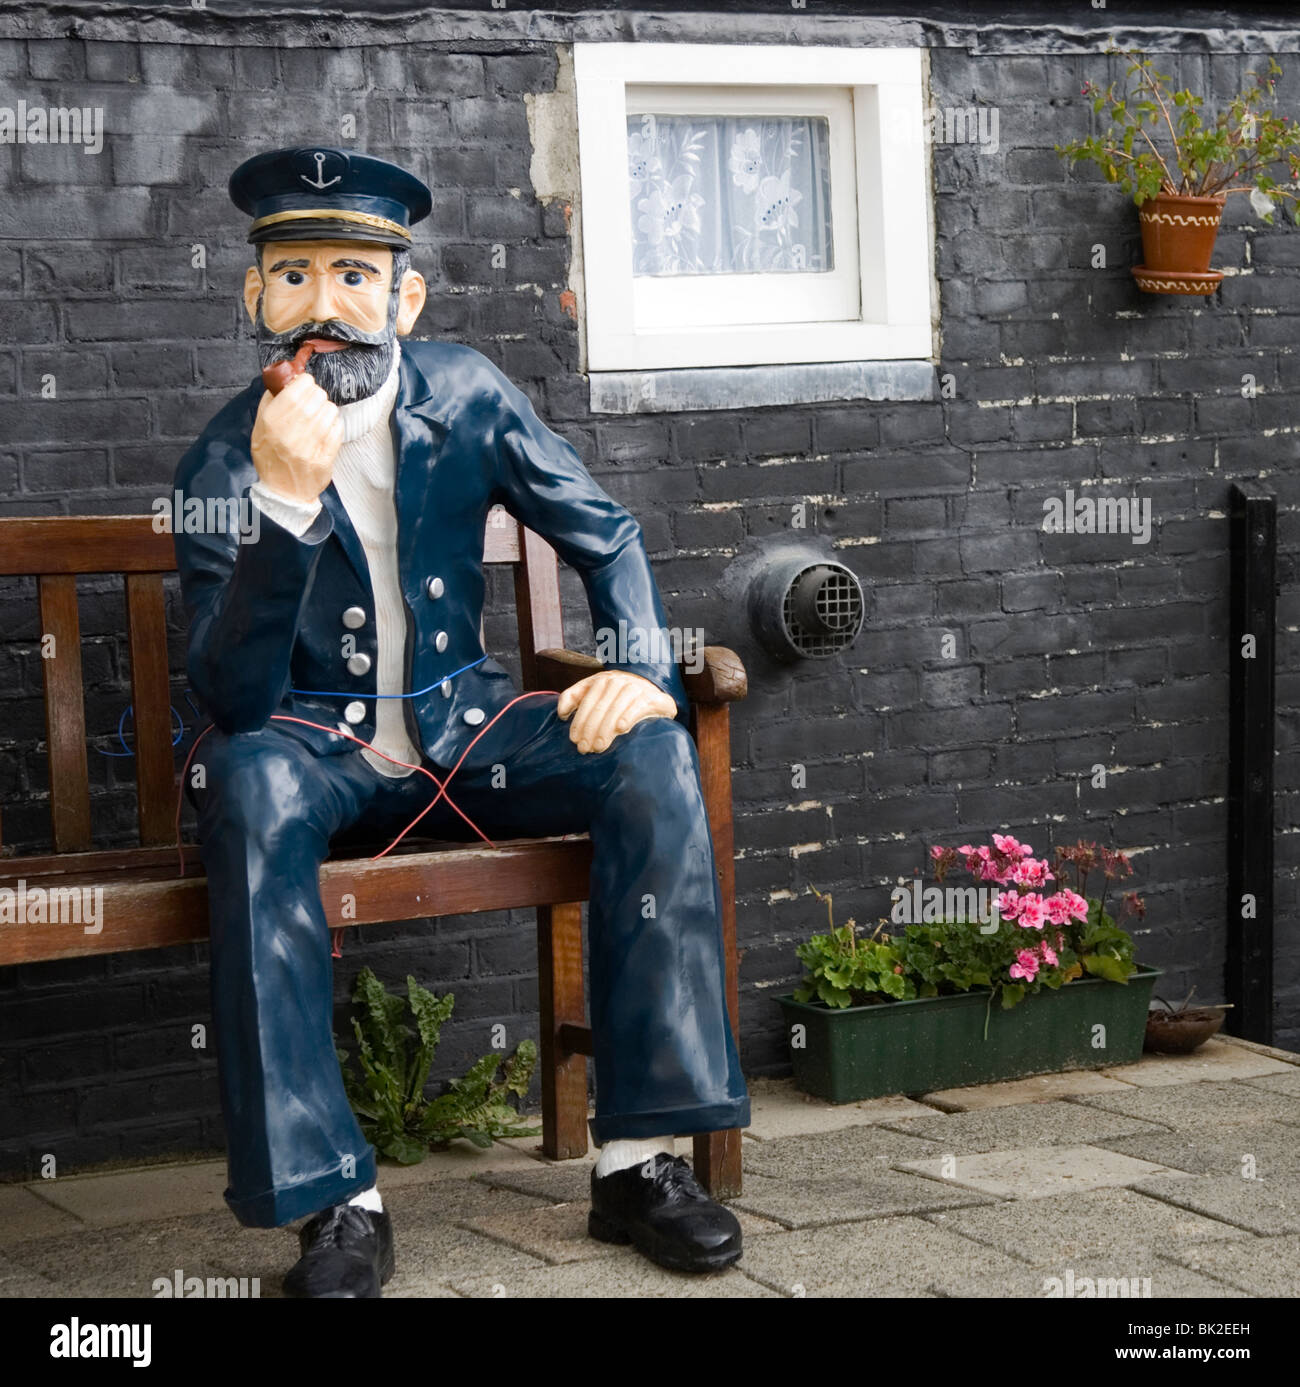 Navy blue statue of sailor sitting on a garden bench smoking a pipe. - Stock Image